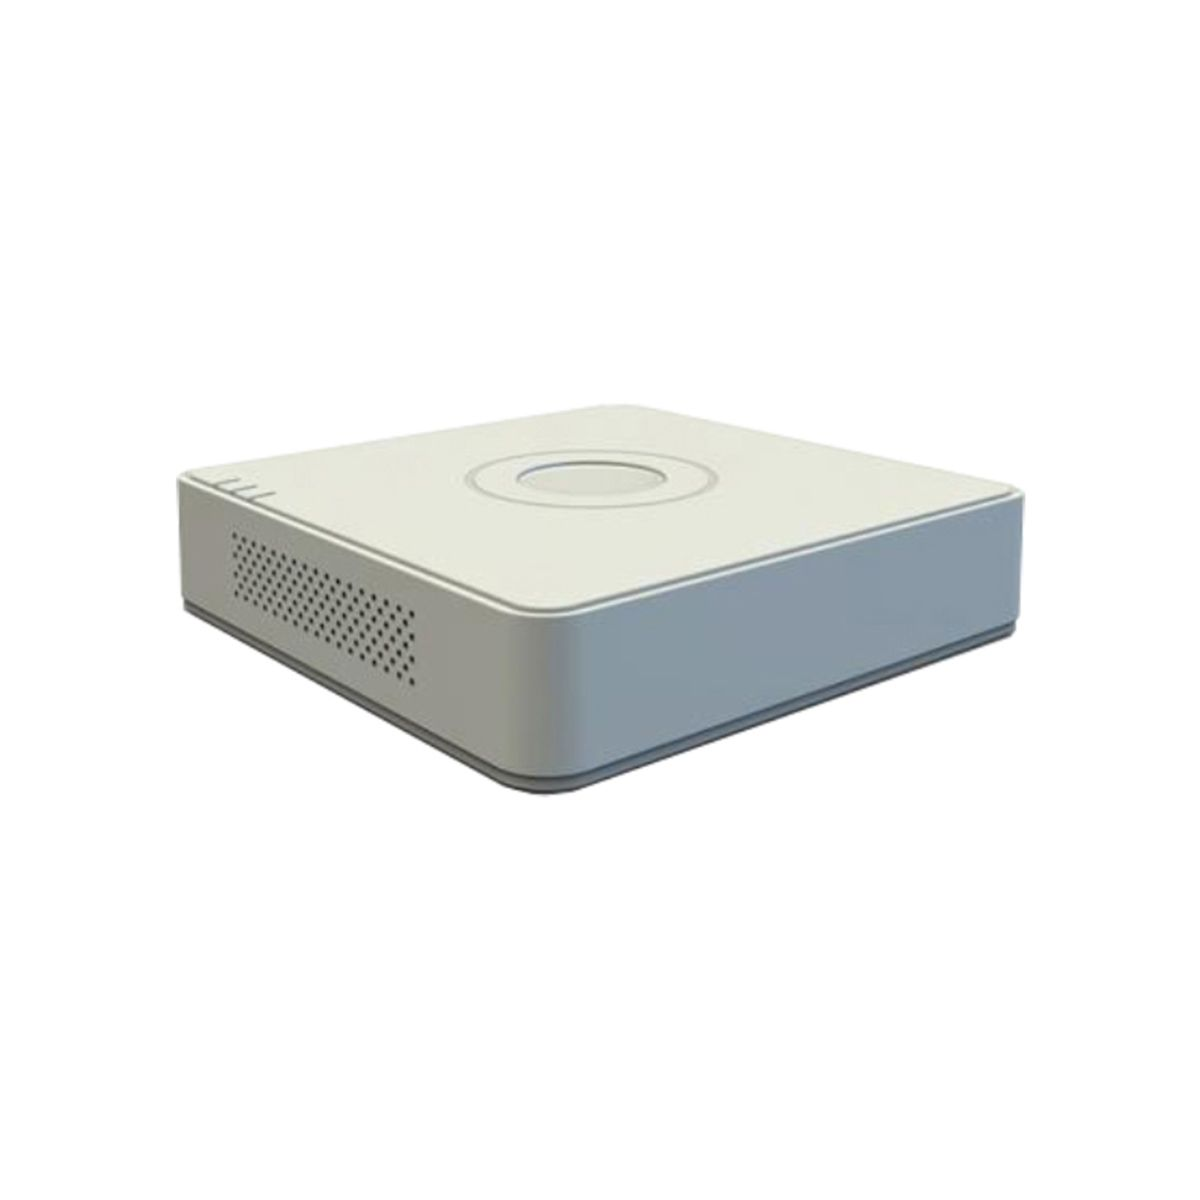 NVR Hikvision 16 canales DS-7116NI-SN